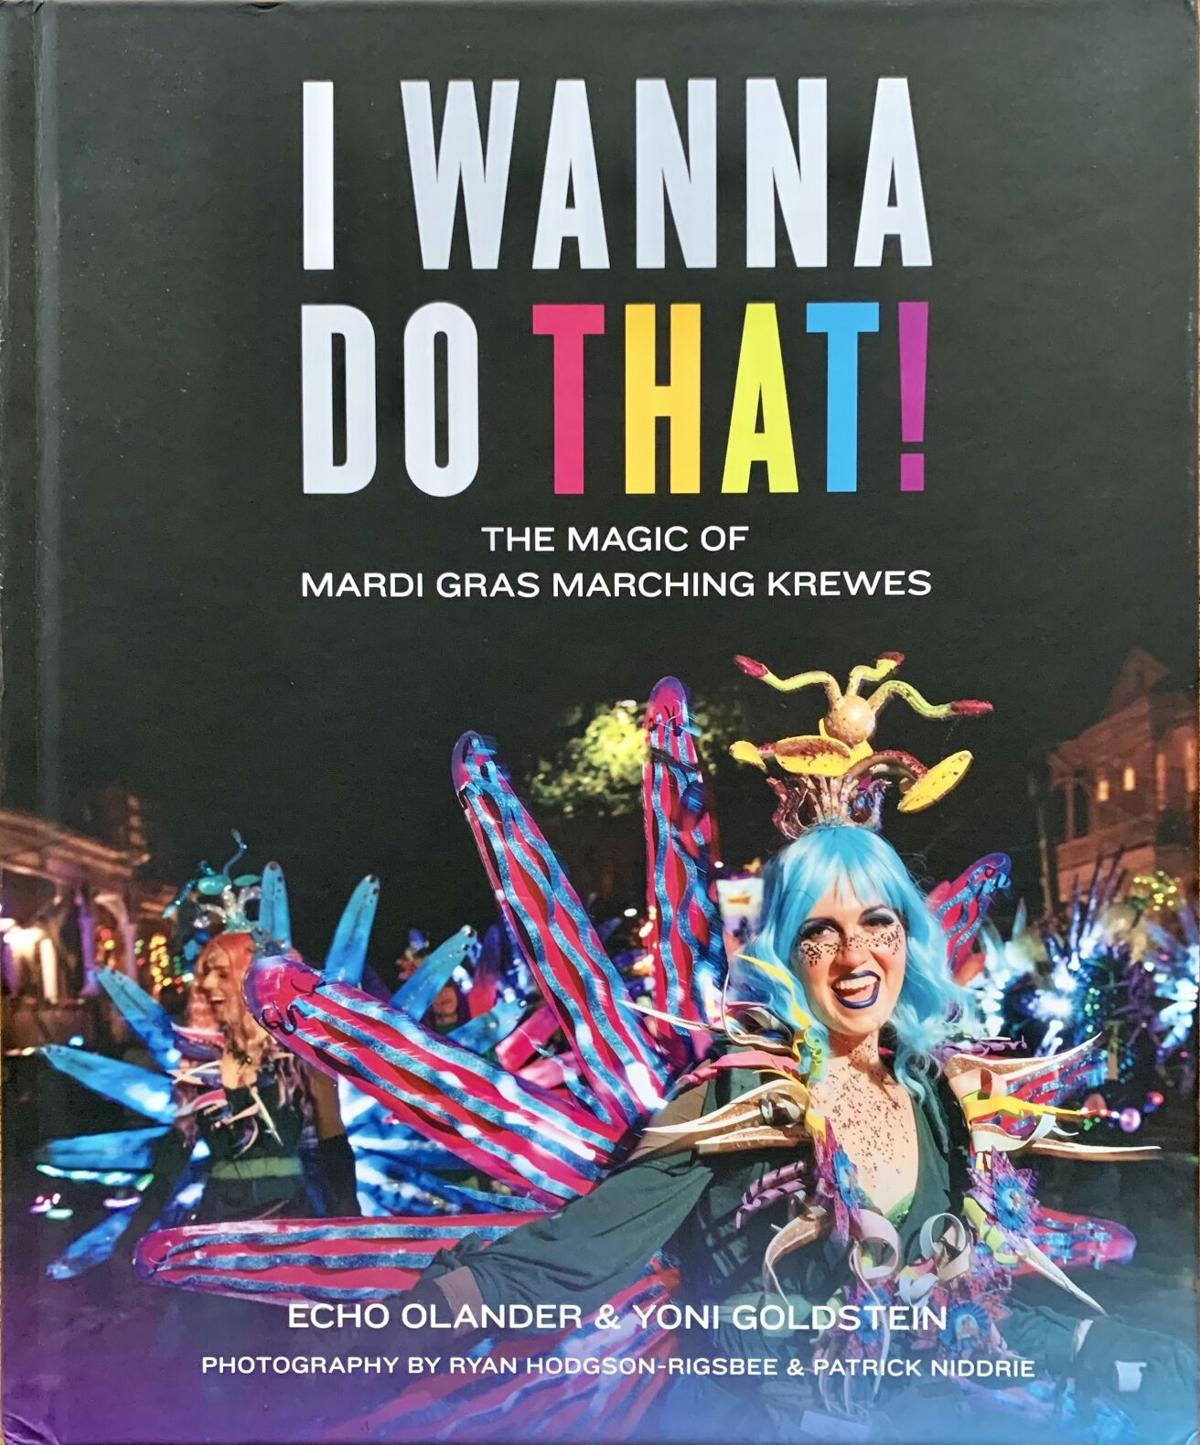 'I Wanna Do That! The Magic of Mardi Gras Marching Krewes,' by Echo Olander and Yoni Goldstein, with photos by Ryan Hodgson-Rigsbee and Patrick Niddrie.jpeg